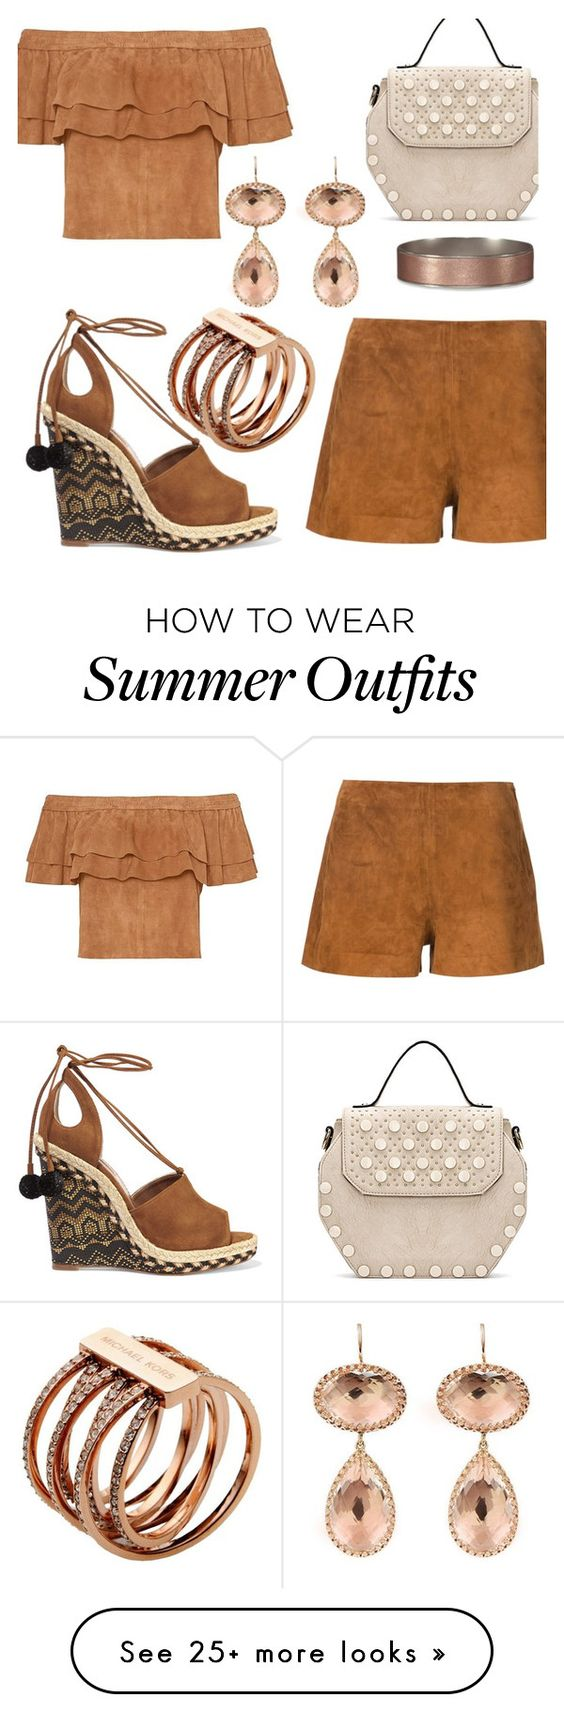 """""""Suede Outfit Summer To Fall"""" by deborah-calton on Polyvore featuring rag & bone, Abercrombie & Fitch, Aquazzura, Larkspur & Hawk and Michael Kors"""